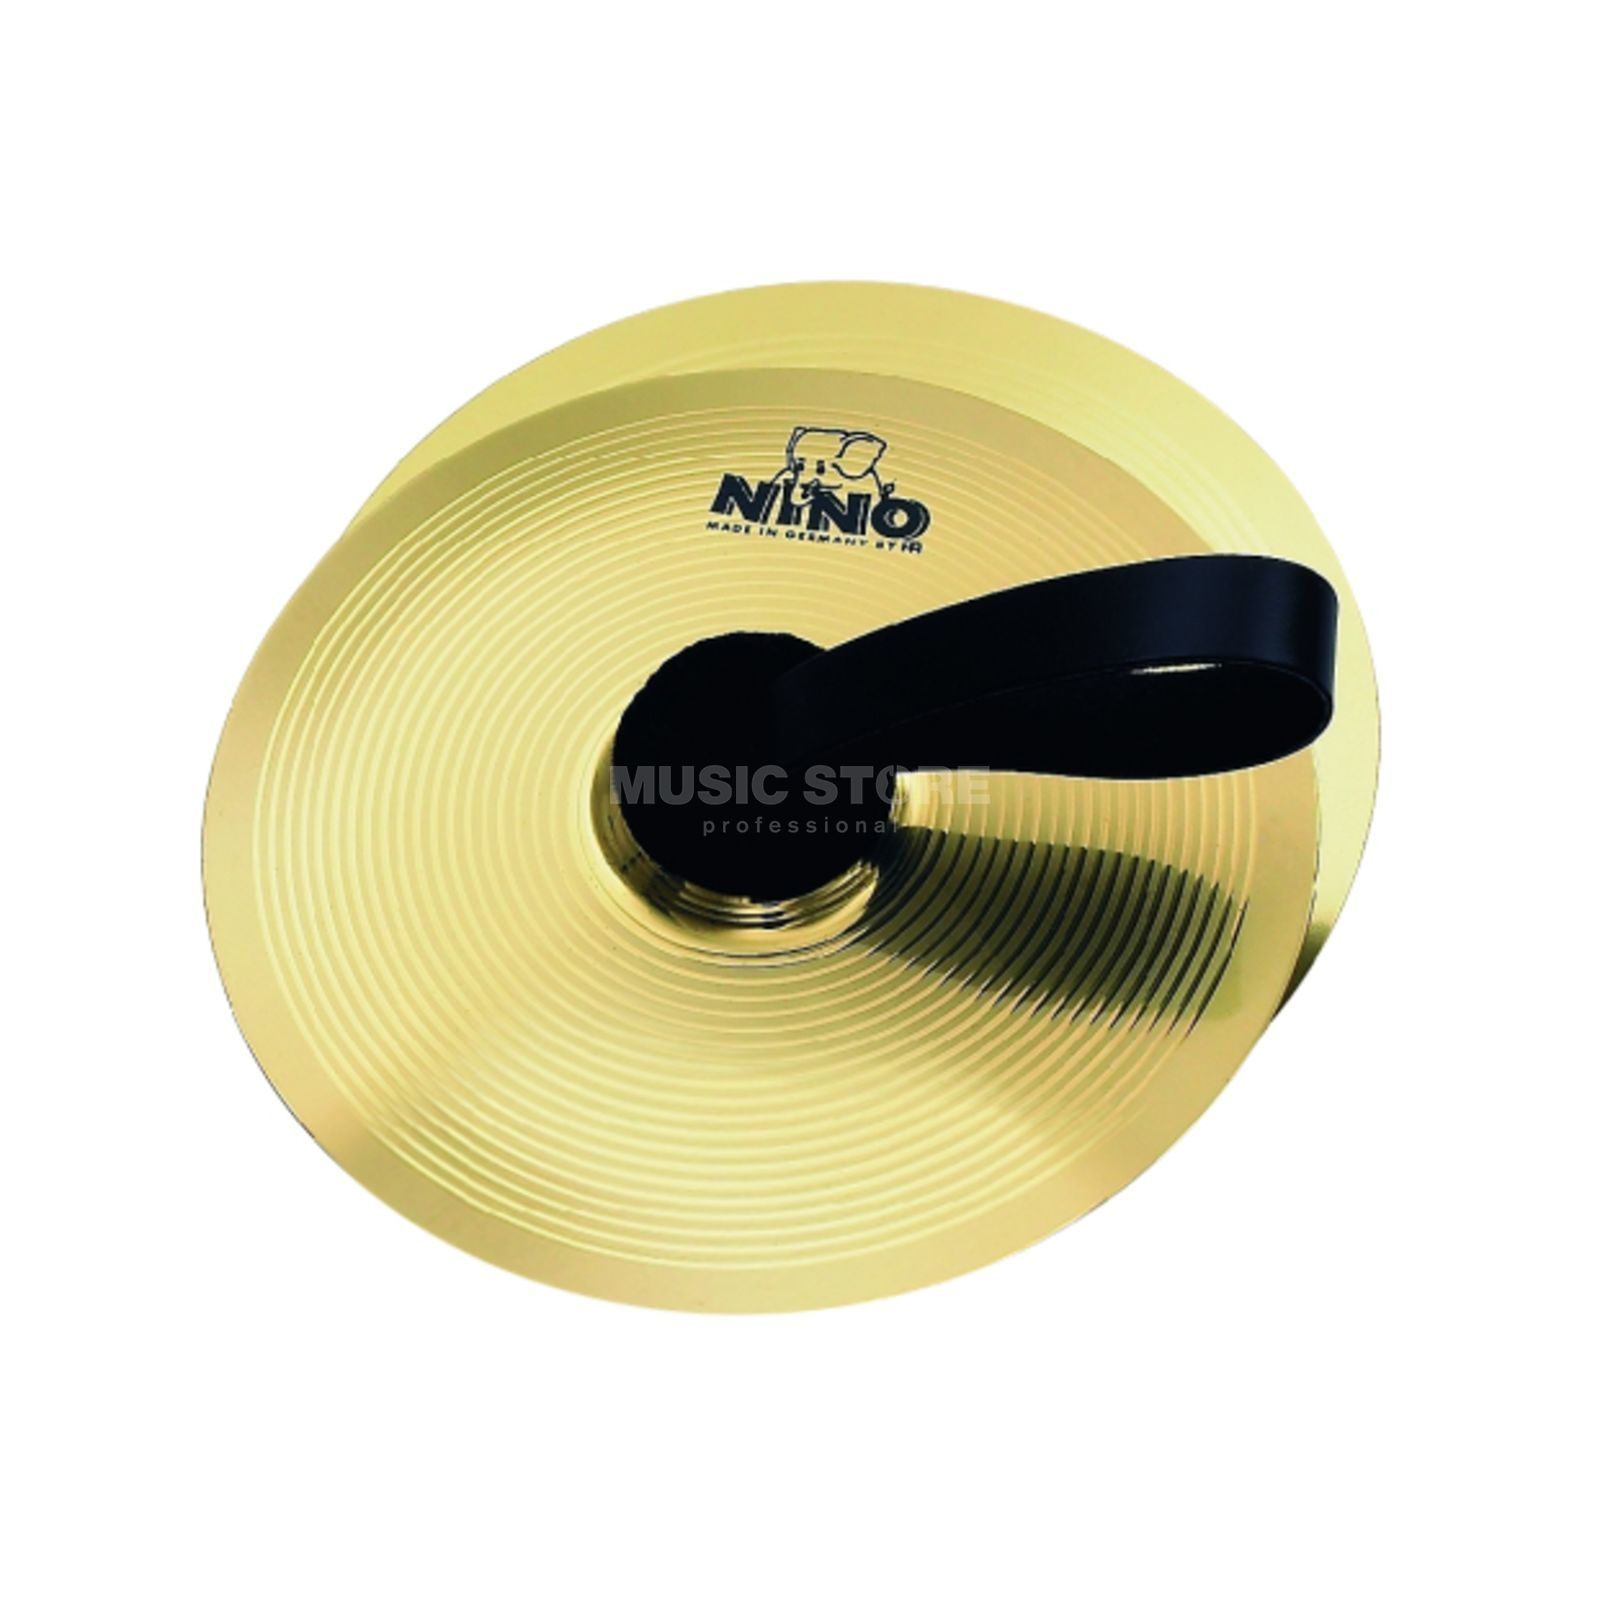 "Meinl Marching Cymbal NINO-BR20, 8"", Brass Product Image"